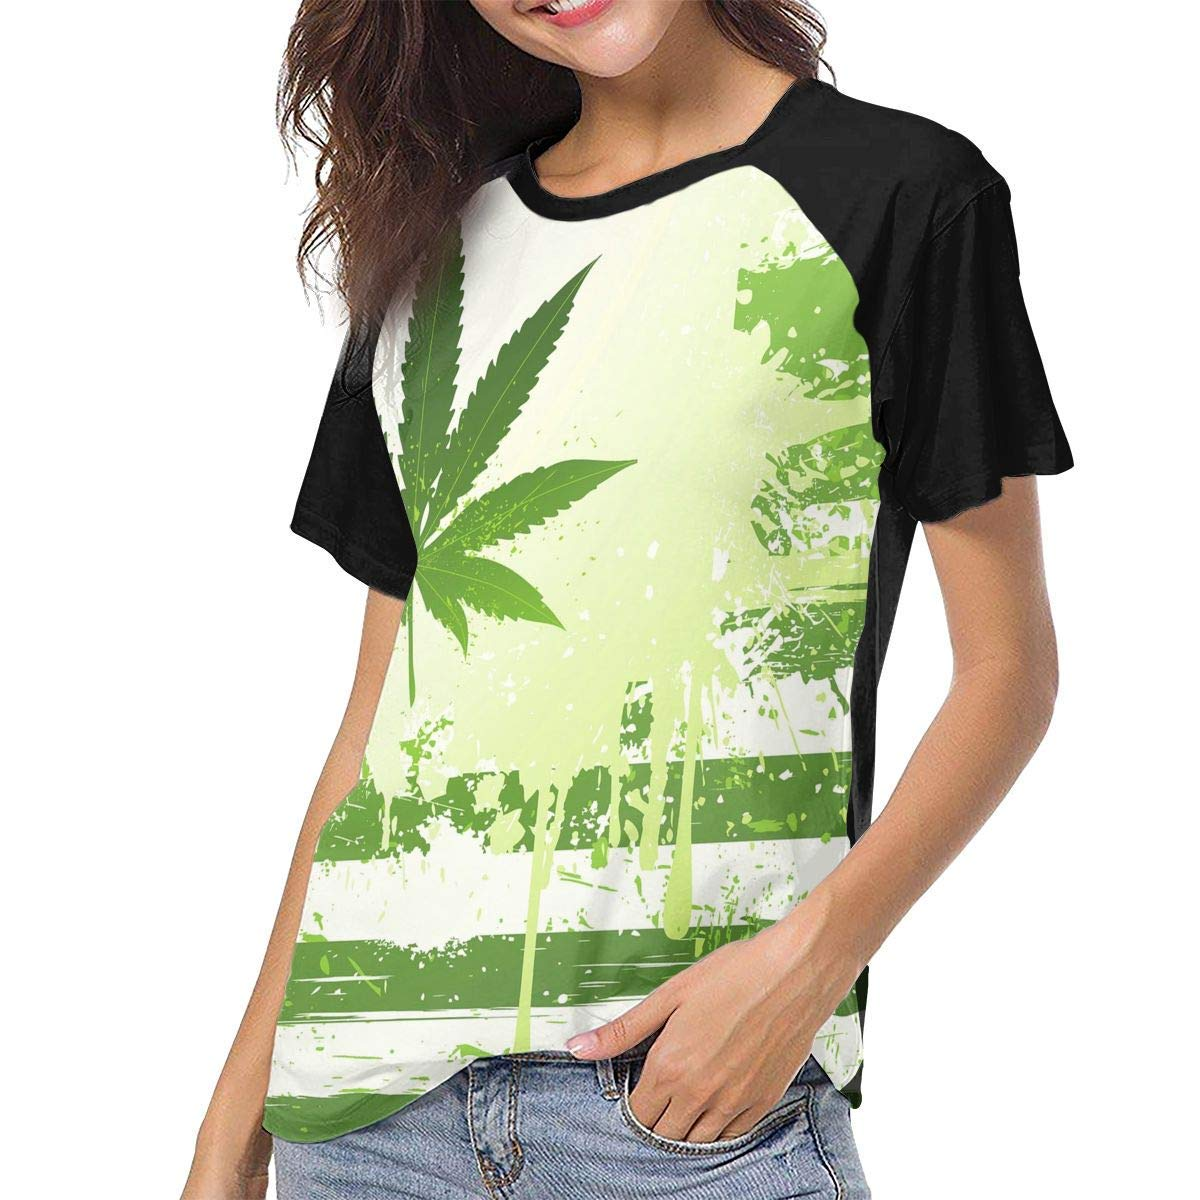 Womens Jersey Shirt Baseball Tee Marijuana Green Flag Stylish Crew Neck Short Sleeve Raglan T-Shirts Tops Blouse